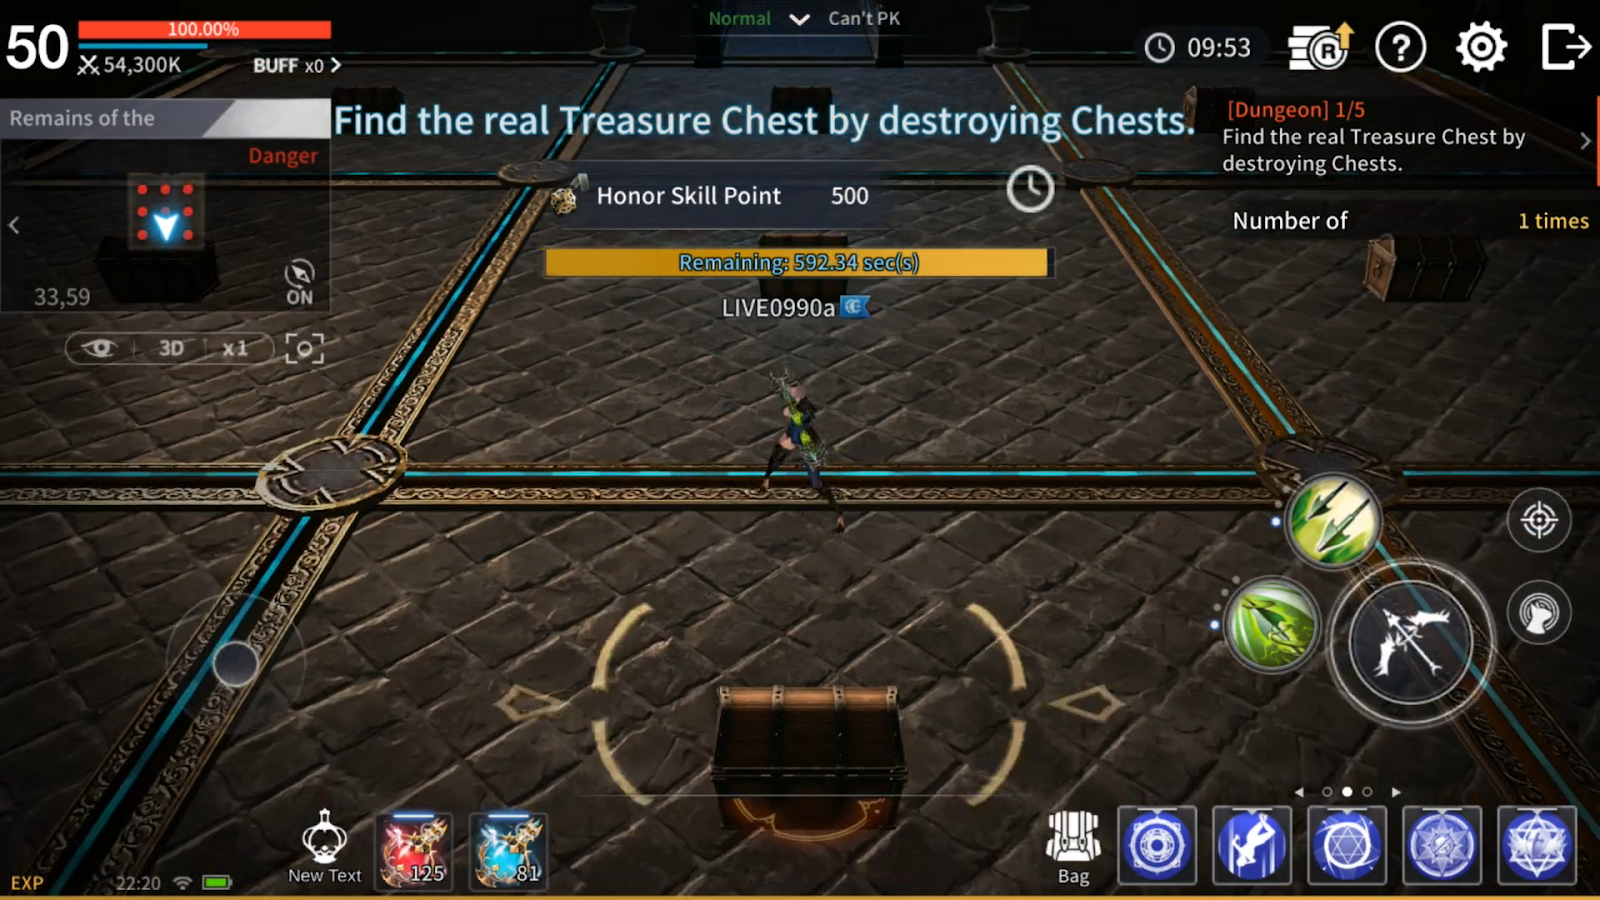 Attack the chests to find the real treasure chest